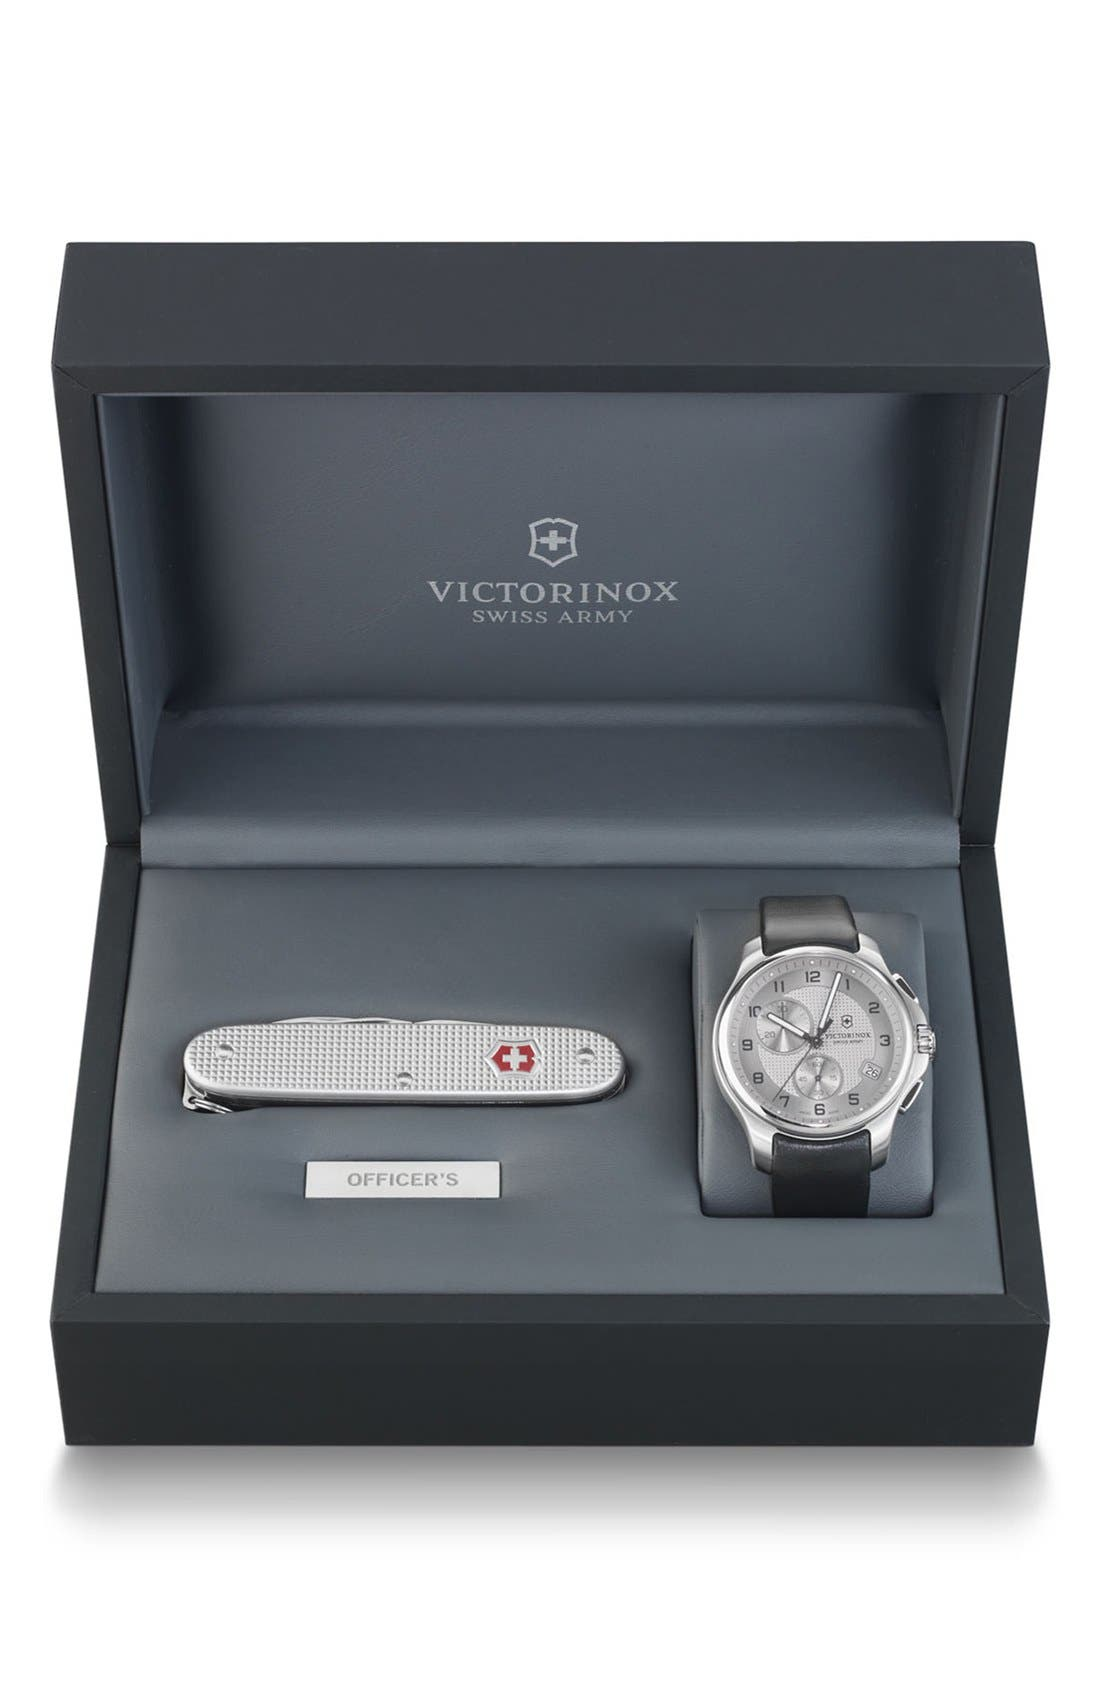 Main Image - Victorinox Swiss Army® 'Officer's' Leather Strap Watch with Knife, 40mm